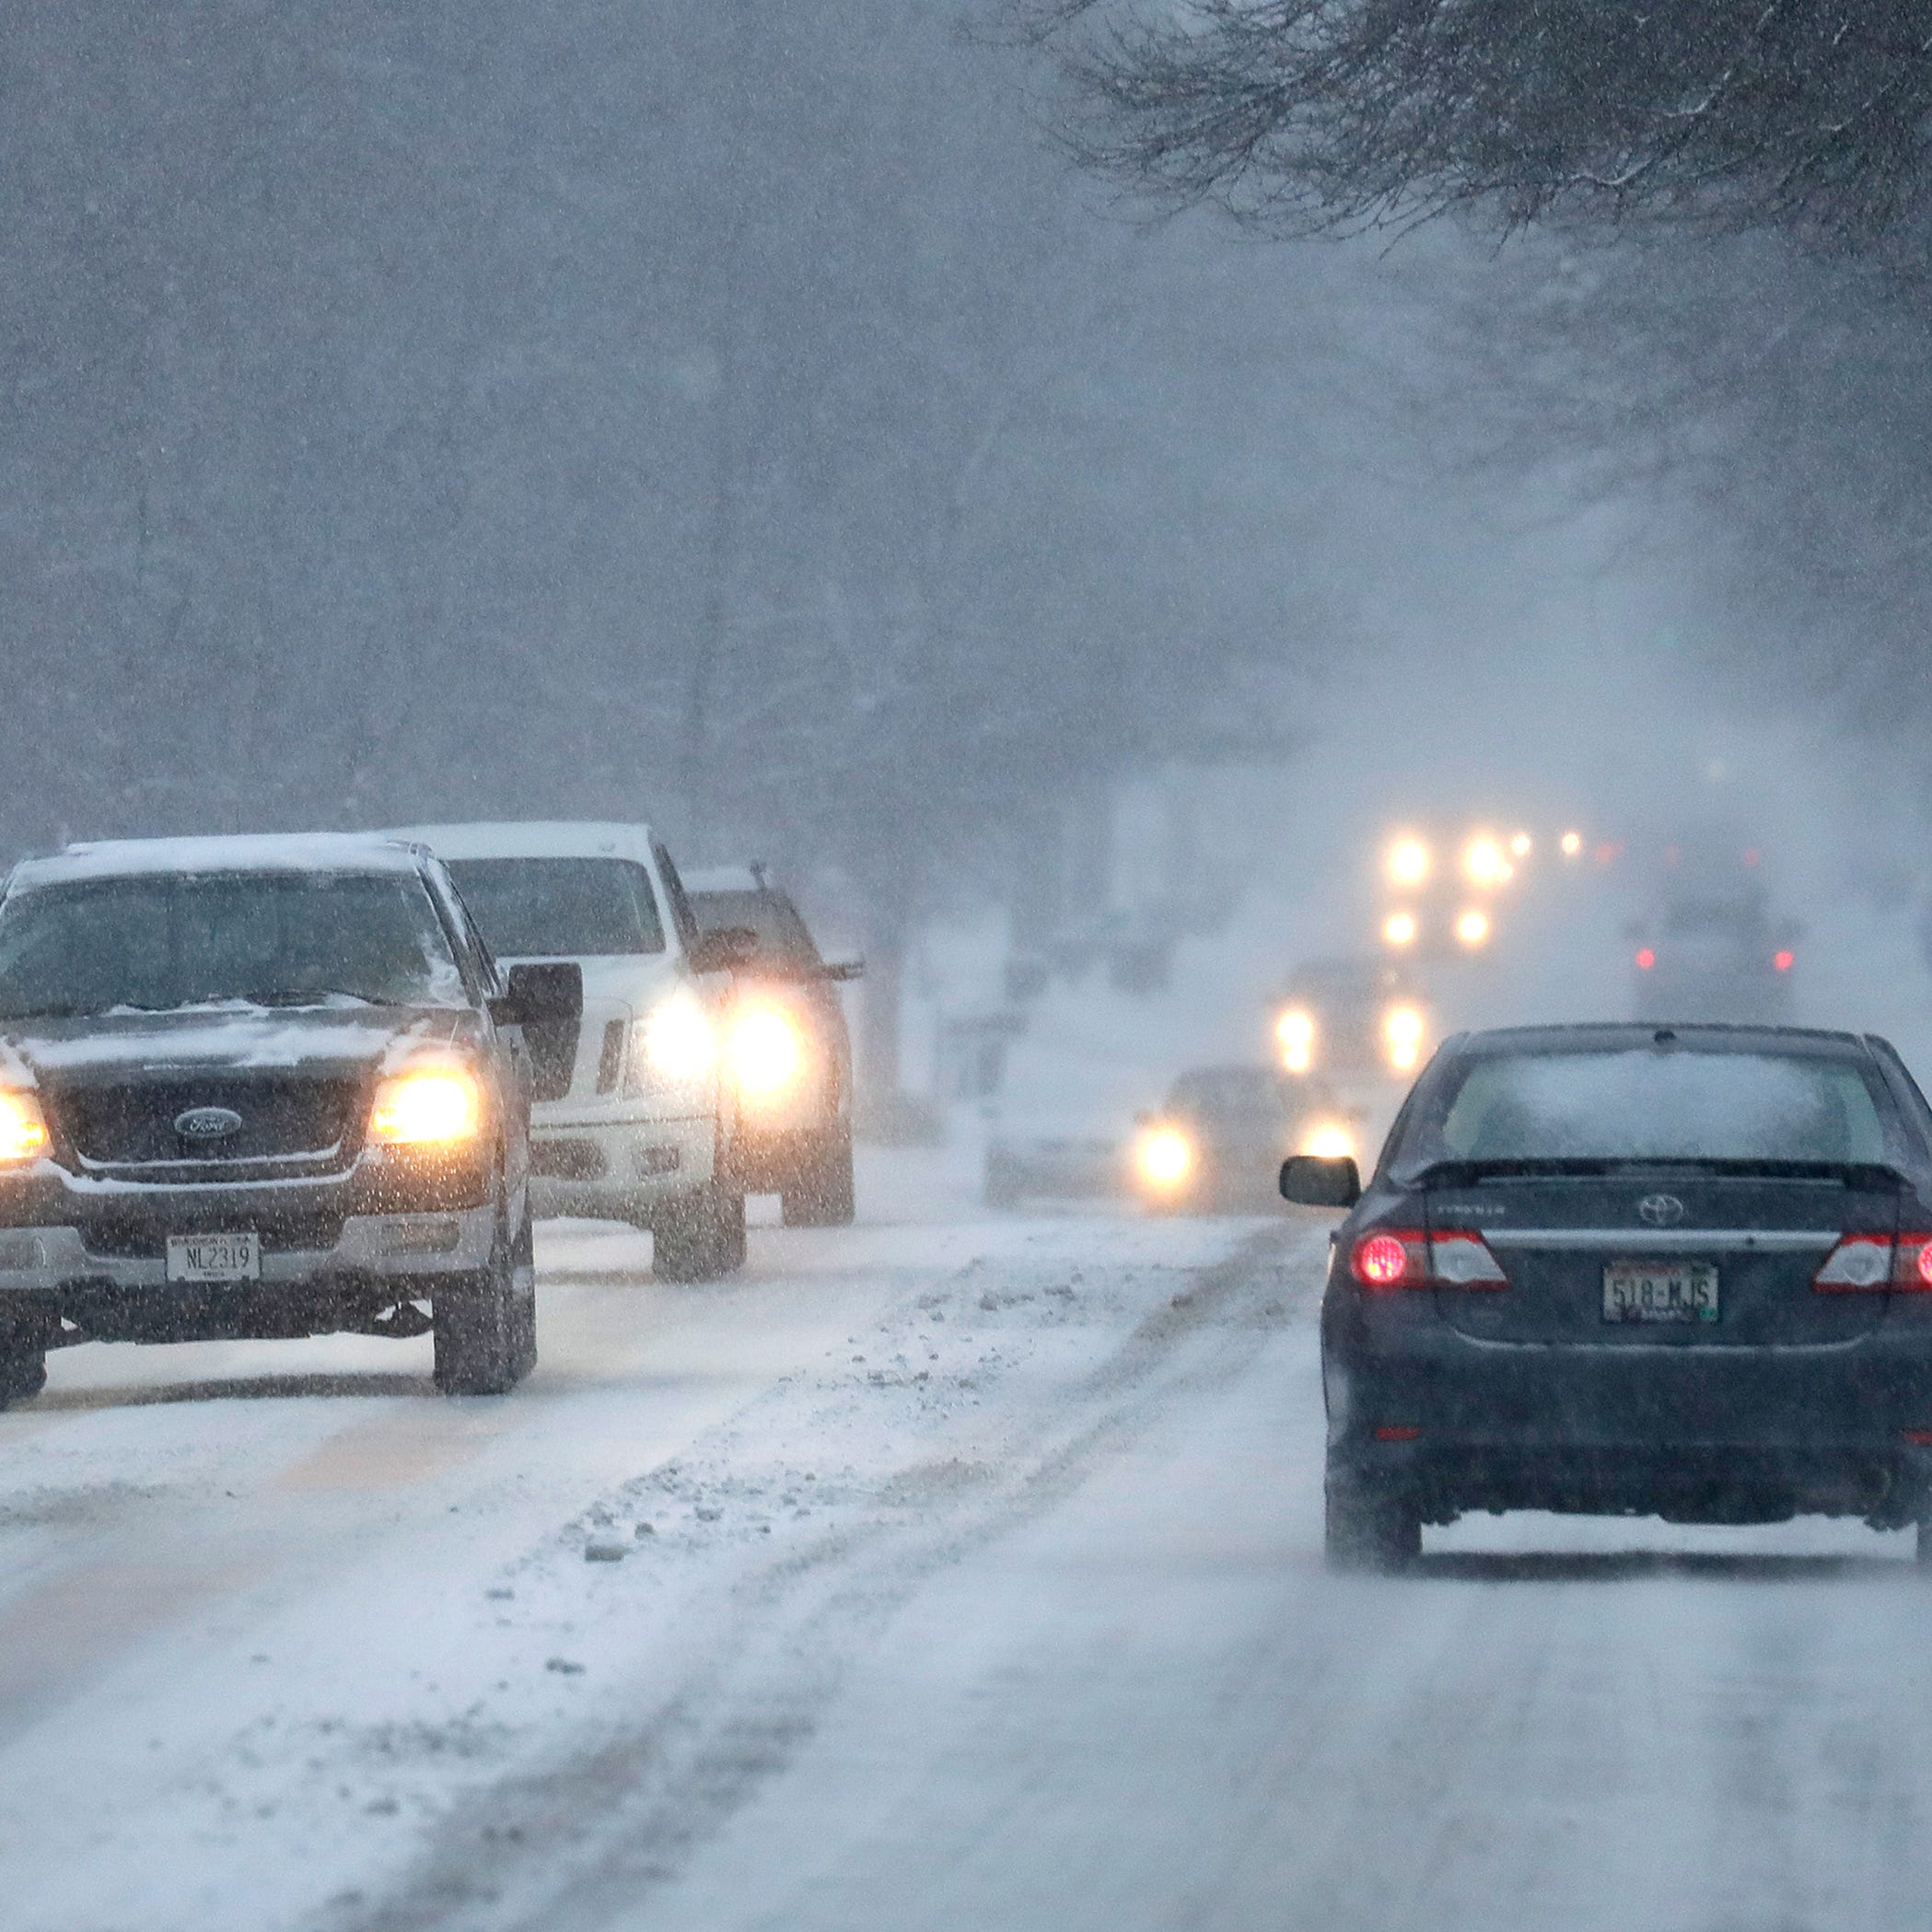 5 things to know for your snowy Wednesday commute to work